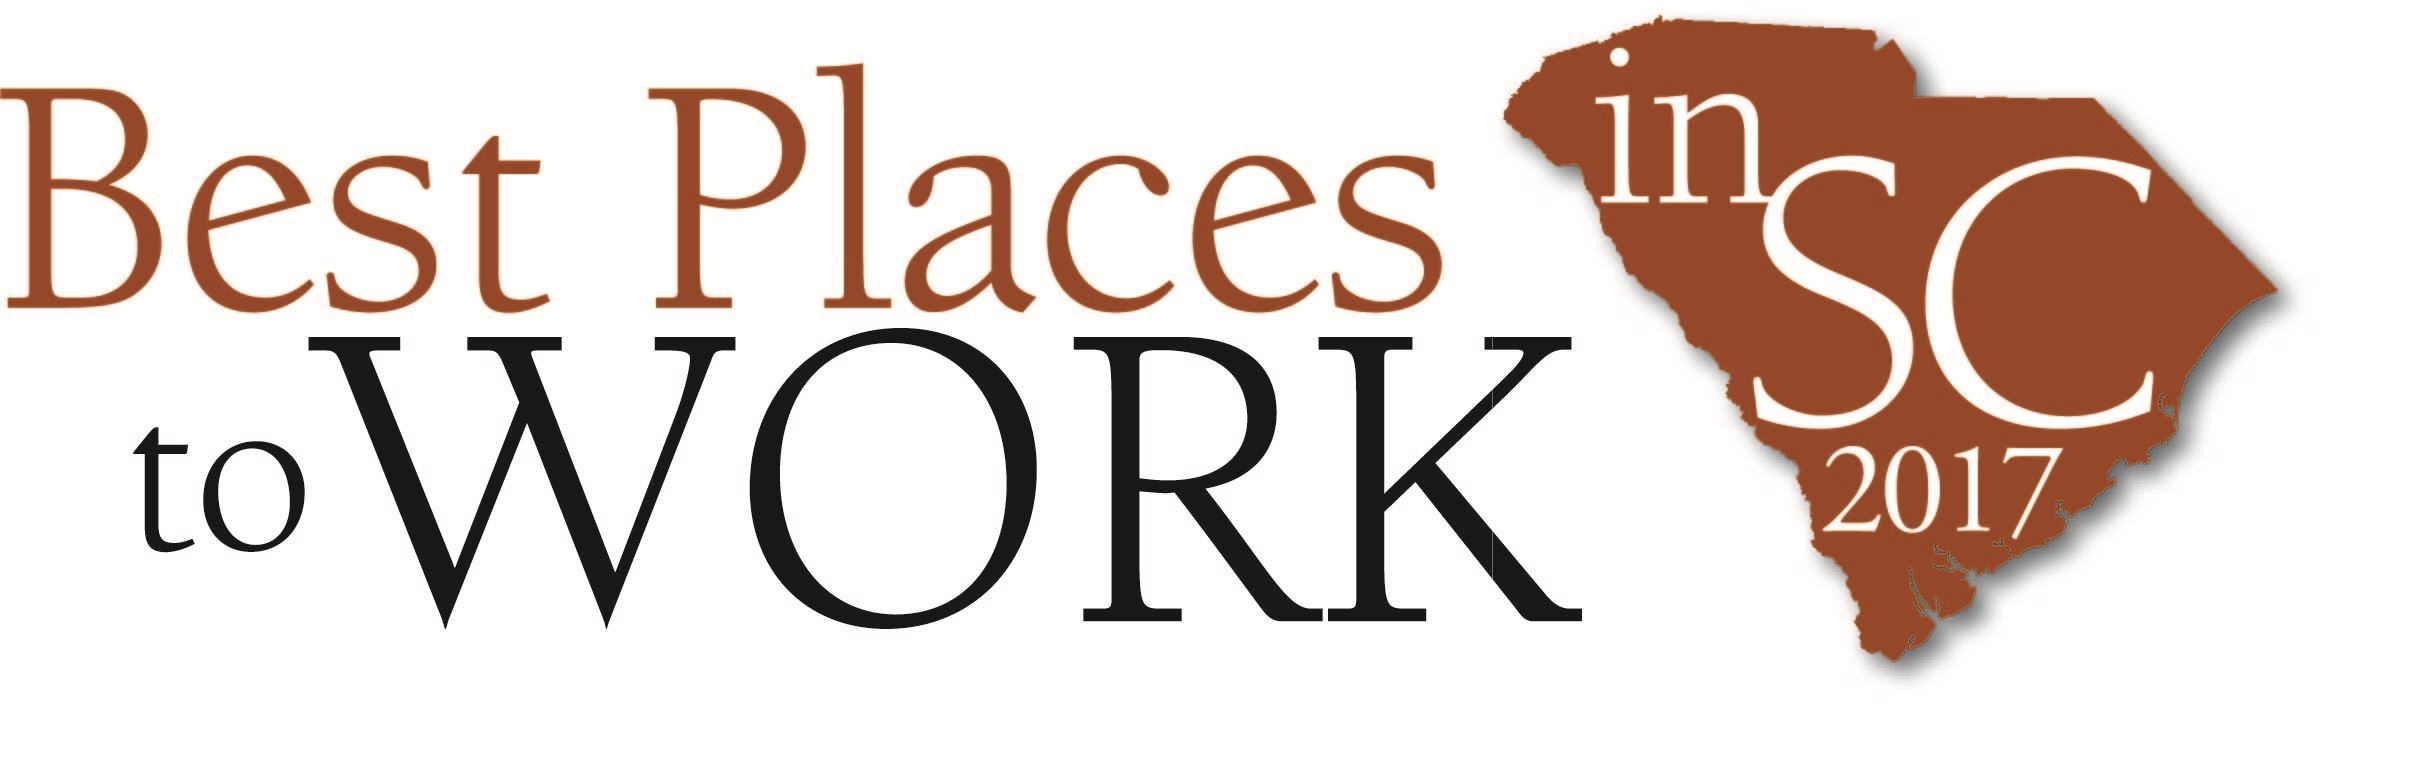 Best Places to Work in South Carolina 2013